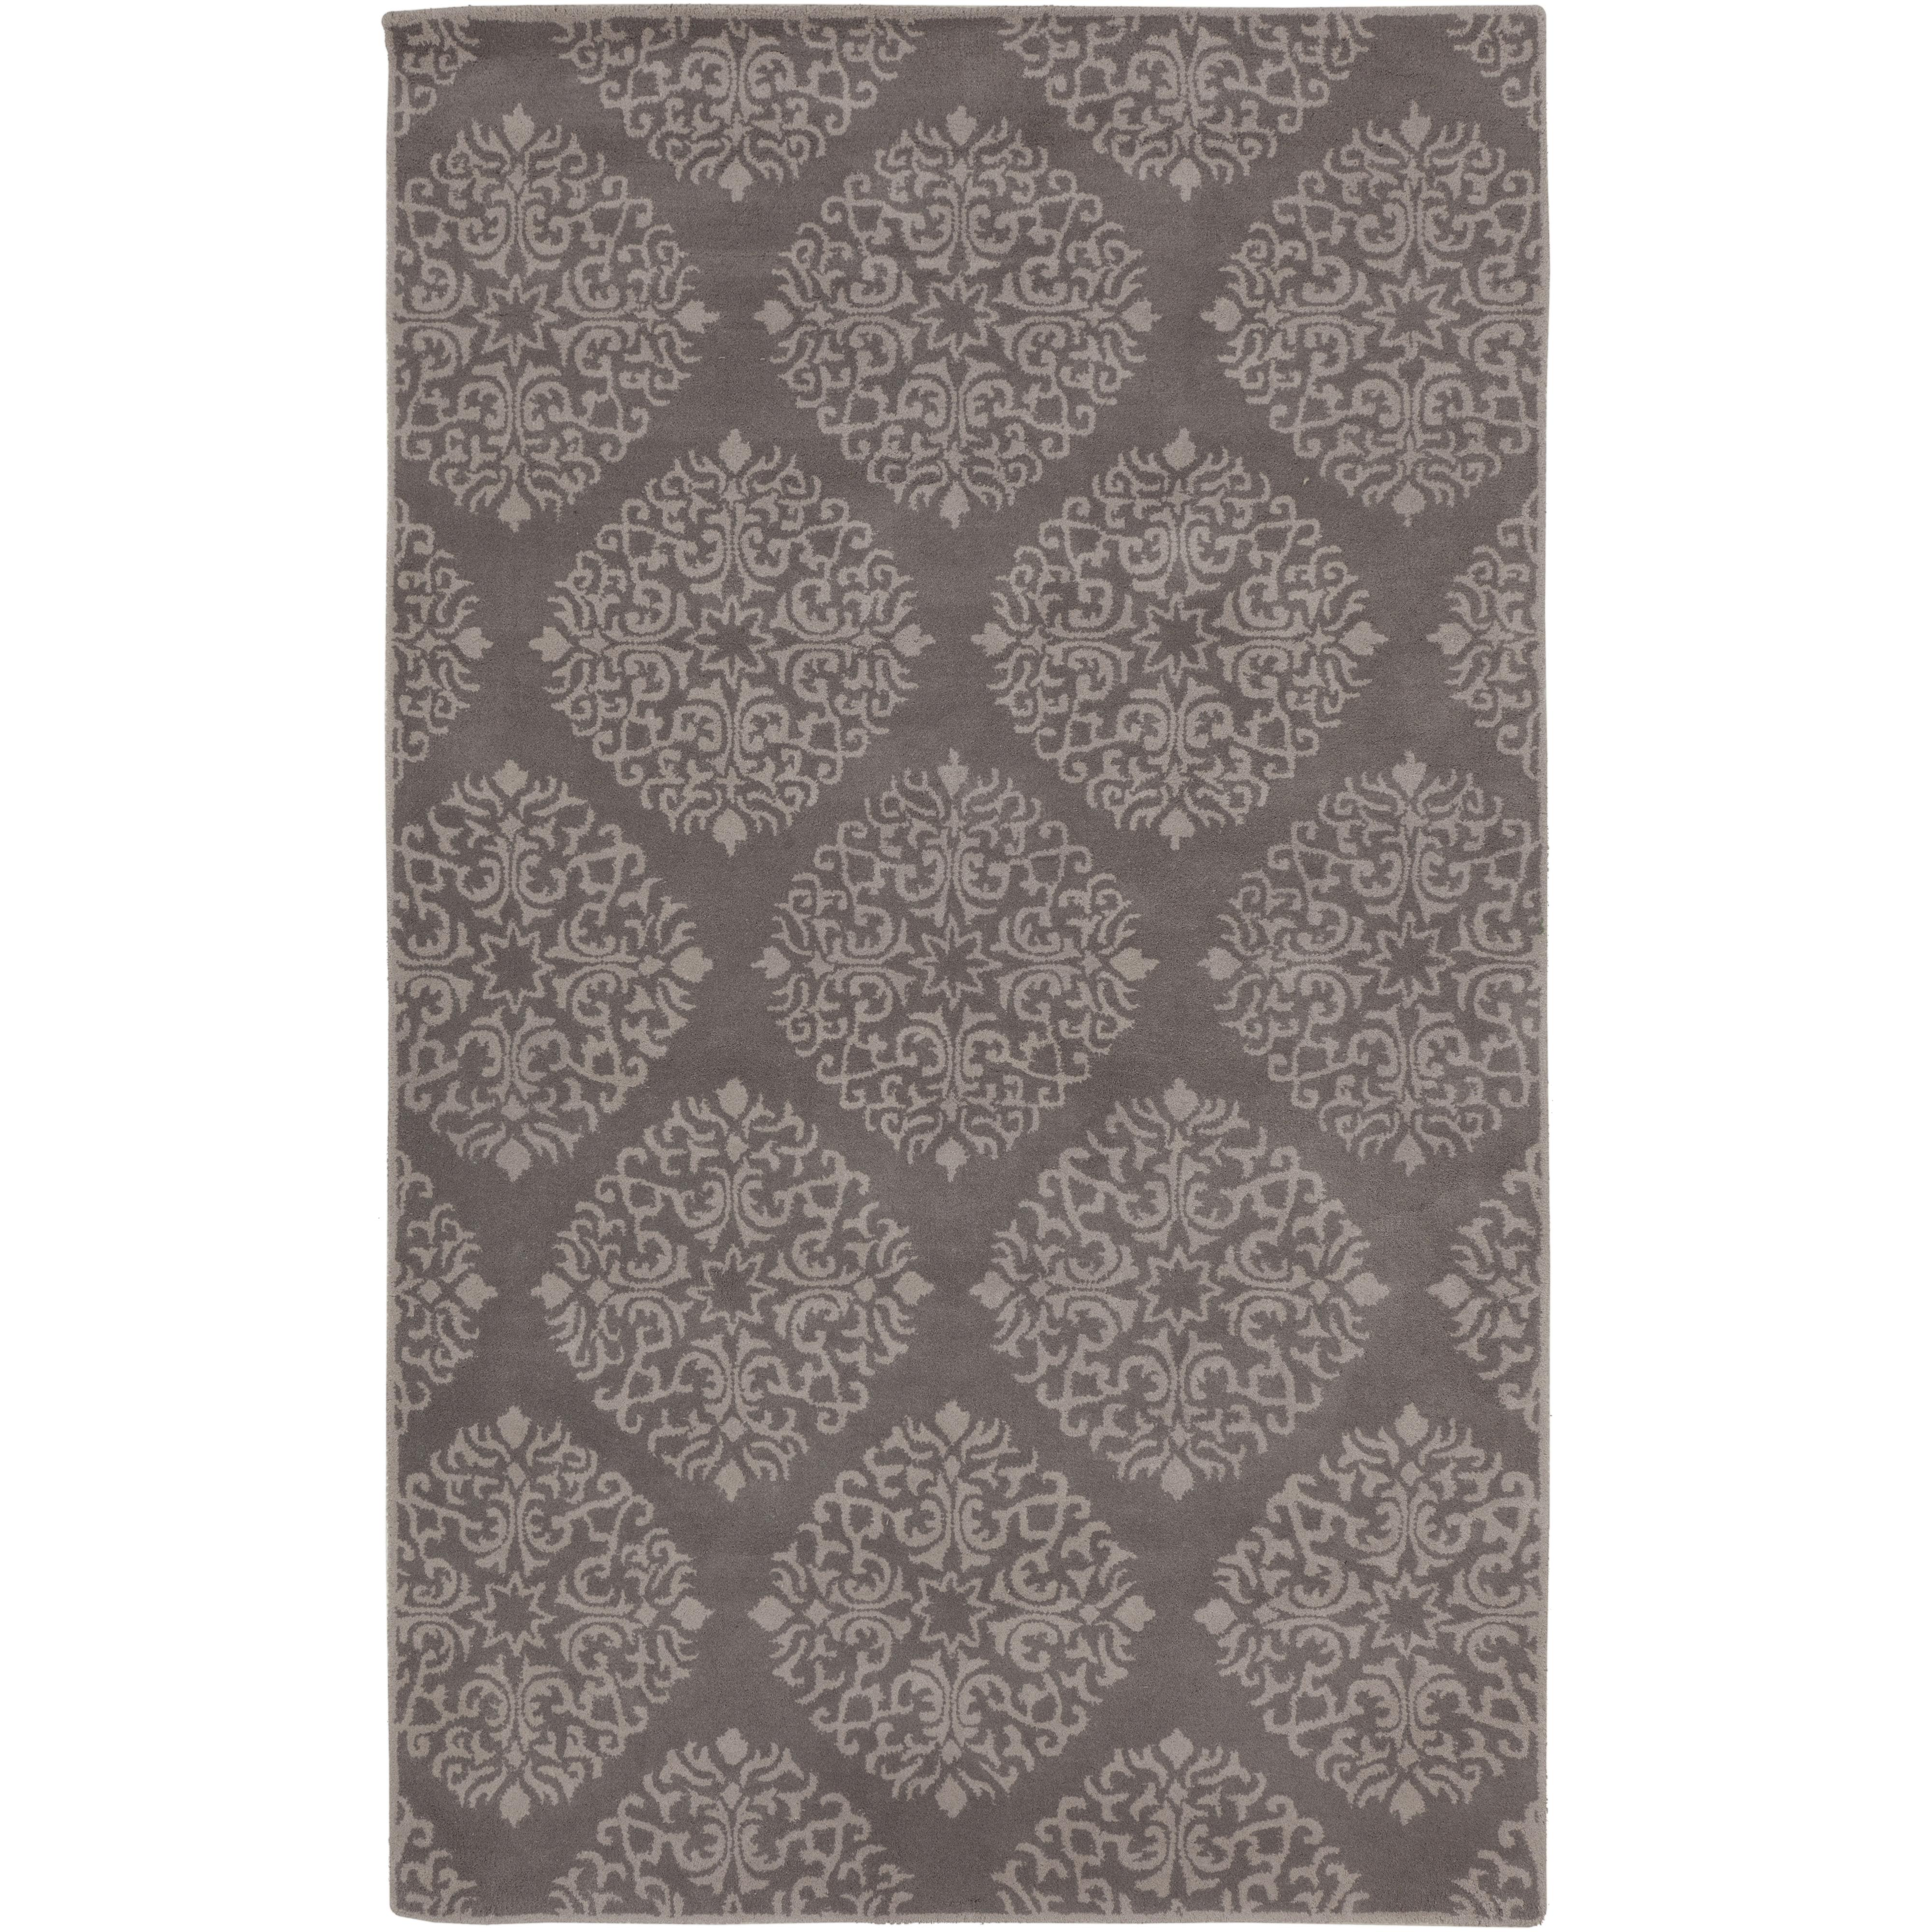 Surya Rugs Chapman Lane 5' x 8' - Item Number: CHLN9007-58